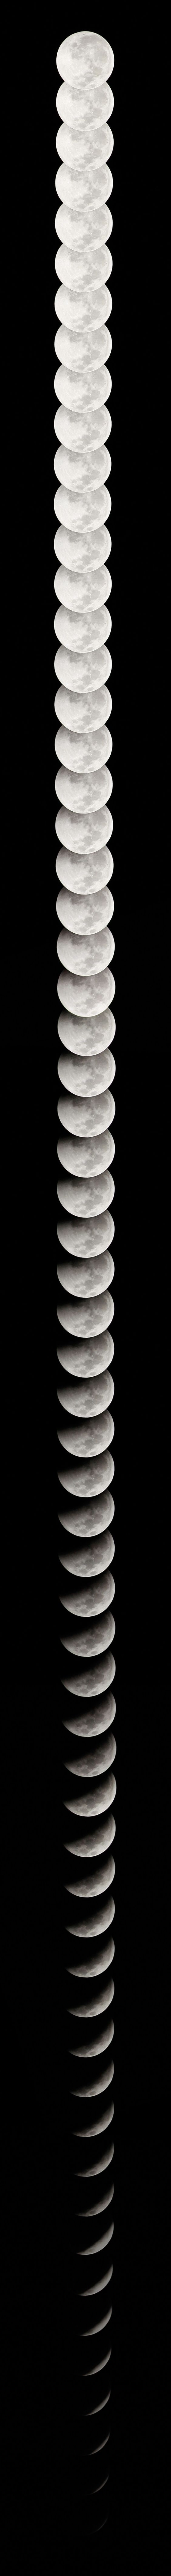 Lunar Eclipse 2010, via Daily Dose of Imagery